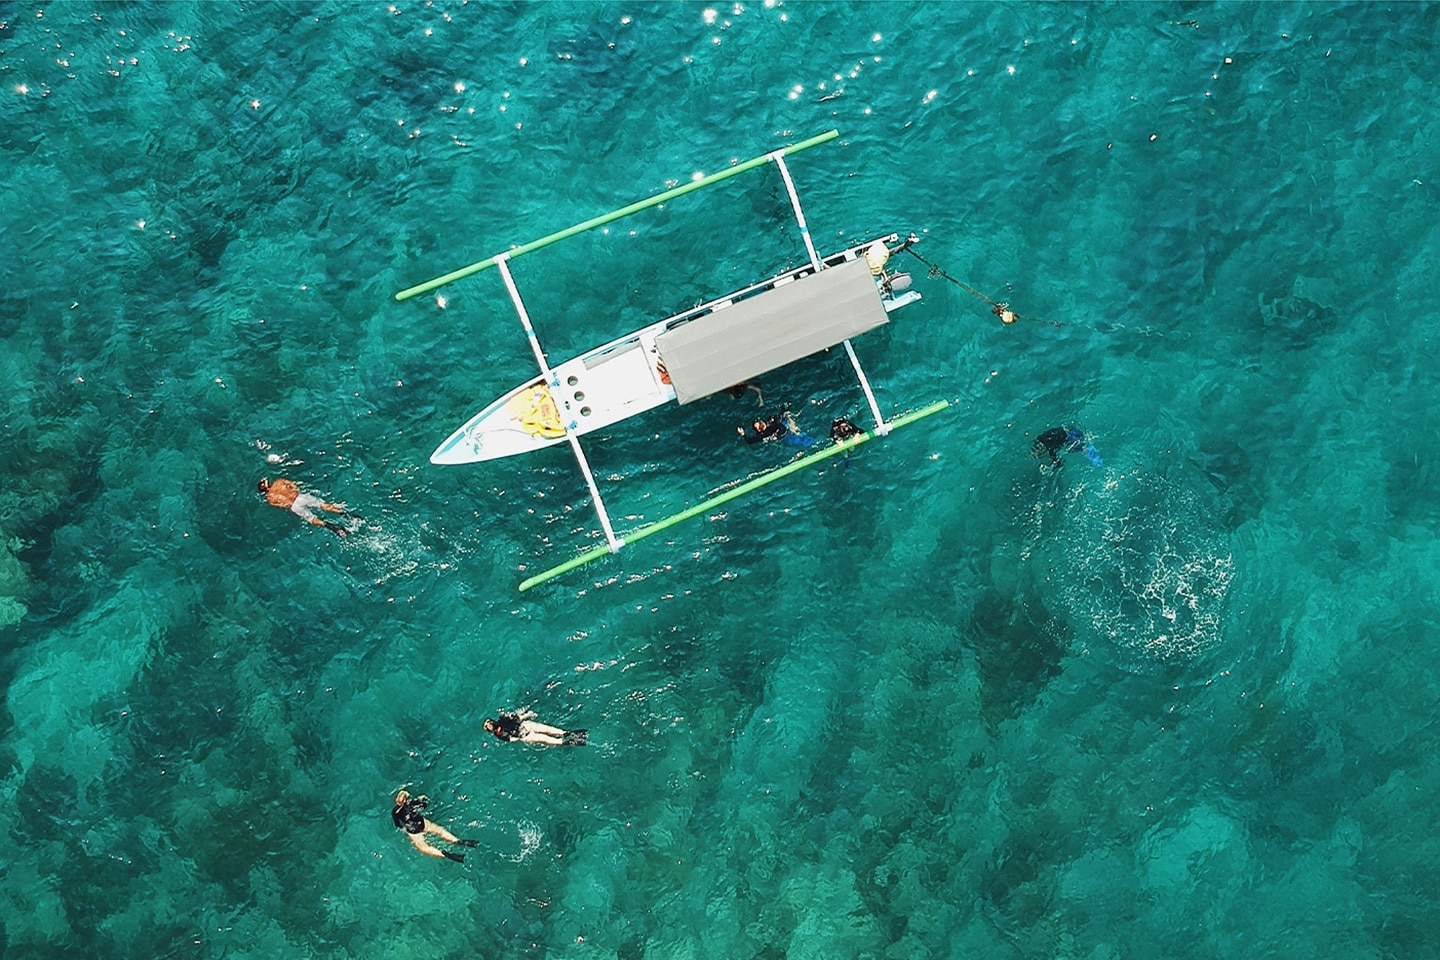 Snorkelers next to a boat